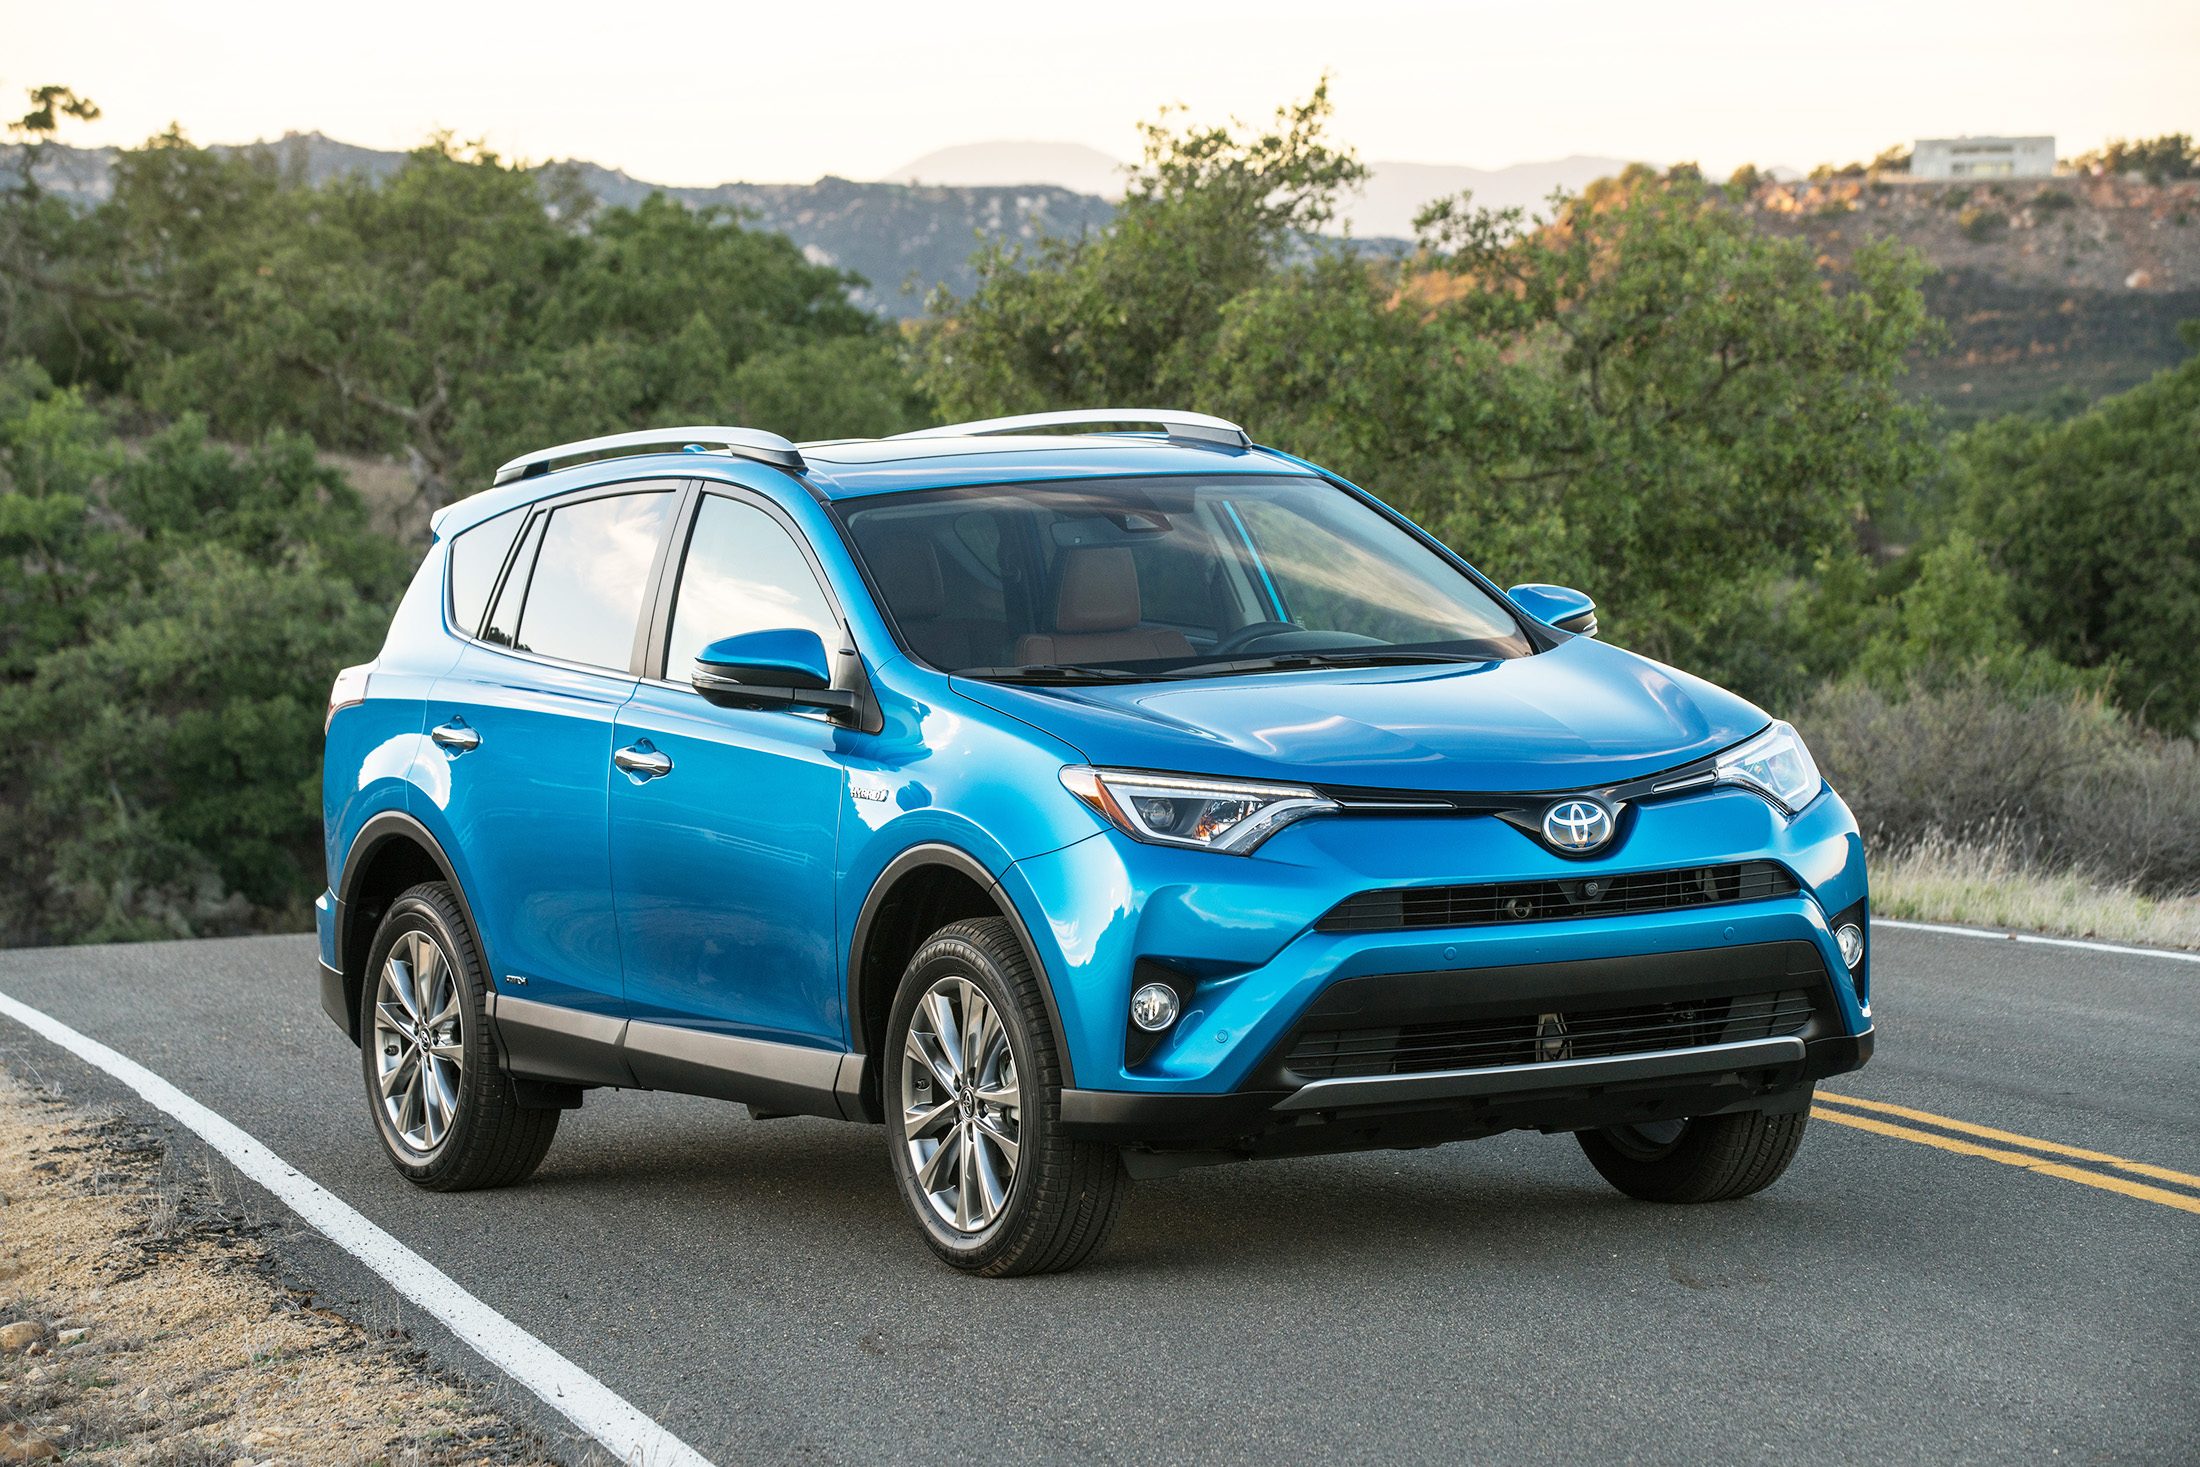 Toyota is rolling out a gas-electric hybrid version of its RAV4 for 2016. It offers a dramatic improvement in gas mileage for around-town driving.